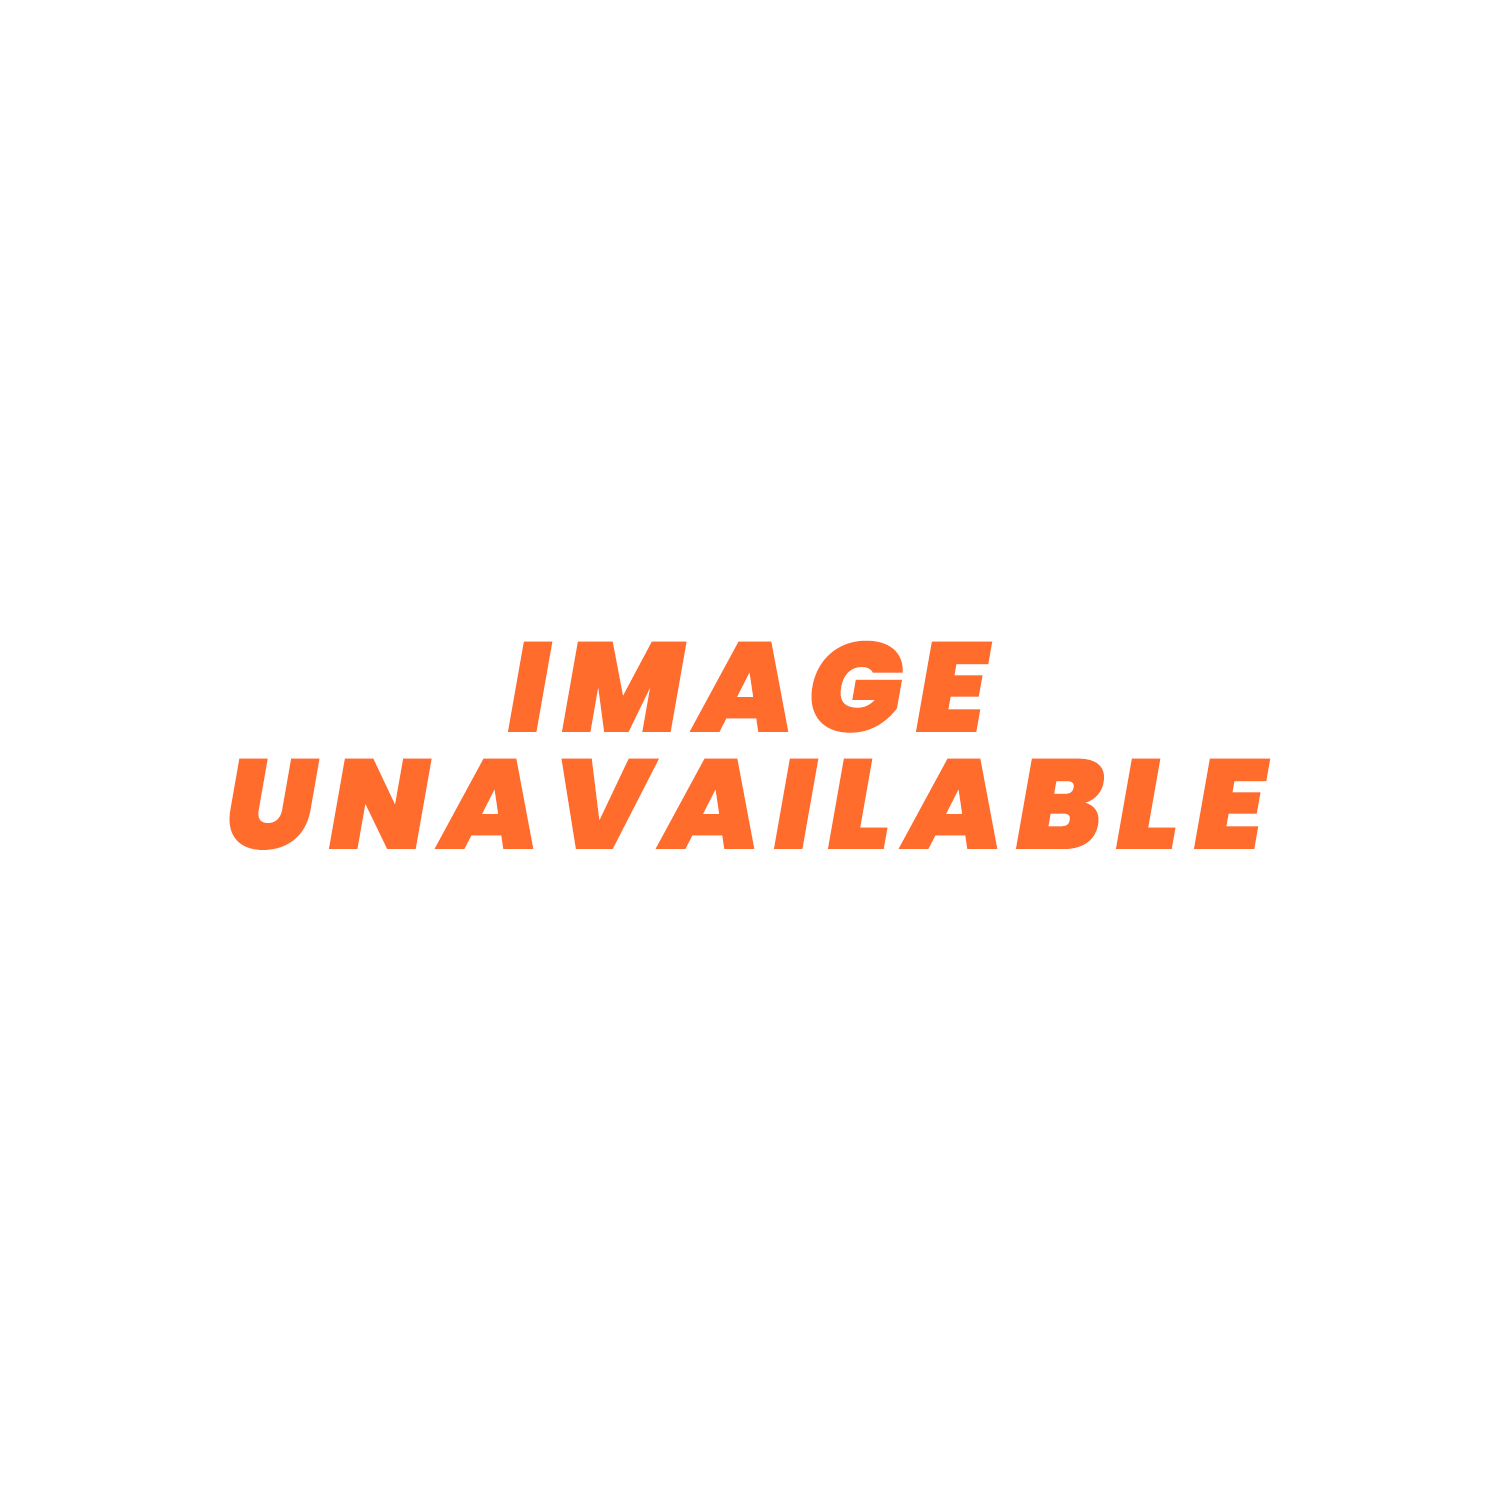 "SPAL Radiator Fan - 12.0"" (305mm) Pull VA10-AP50/C-25A 1097cfm"